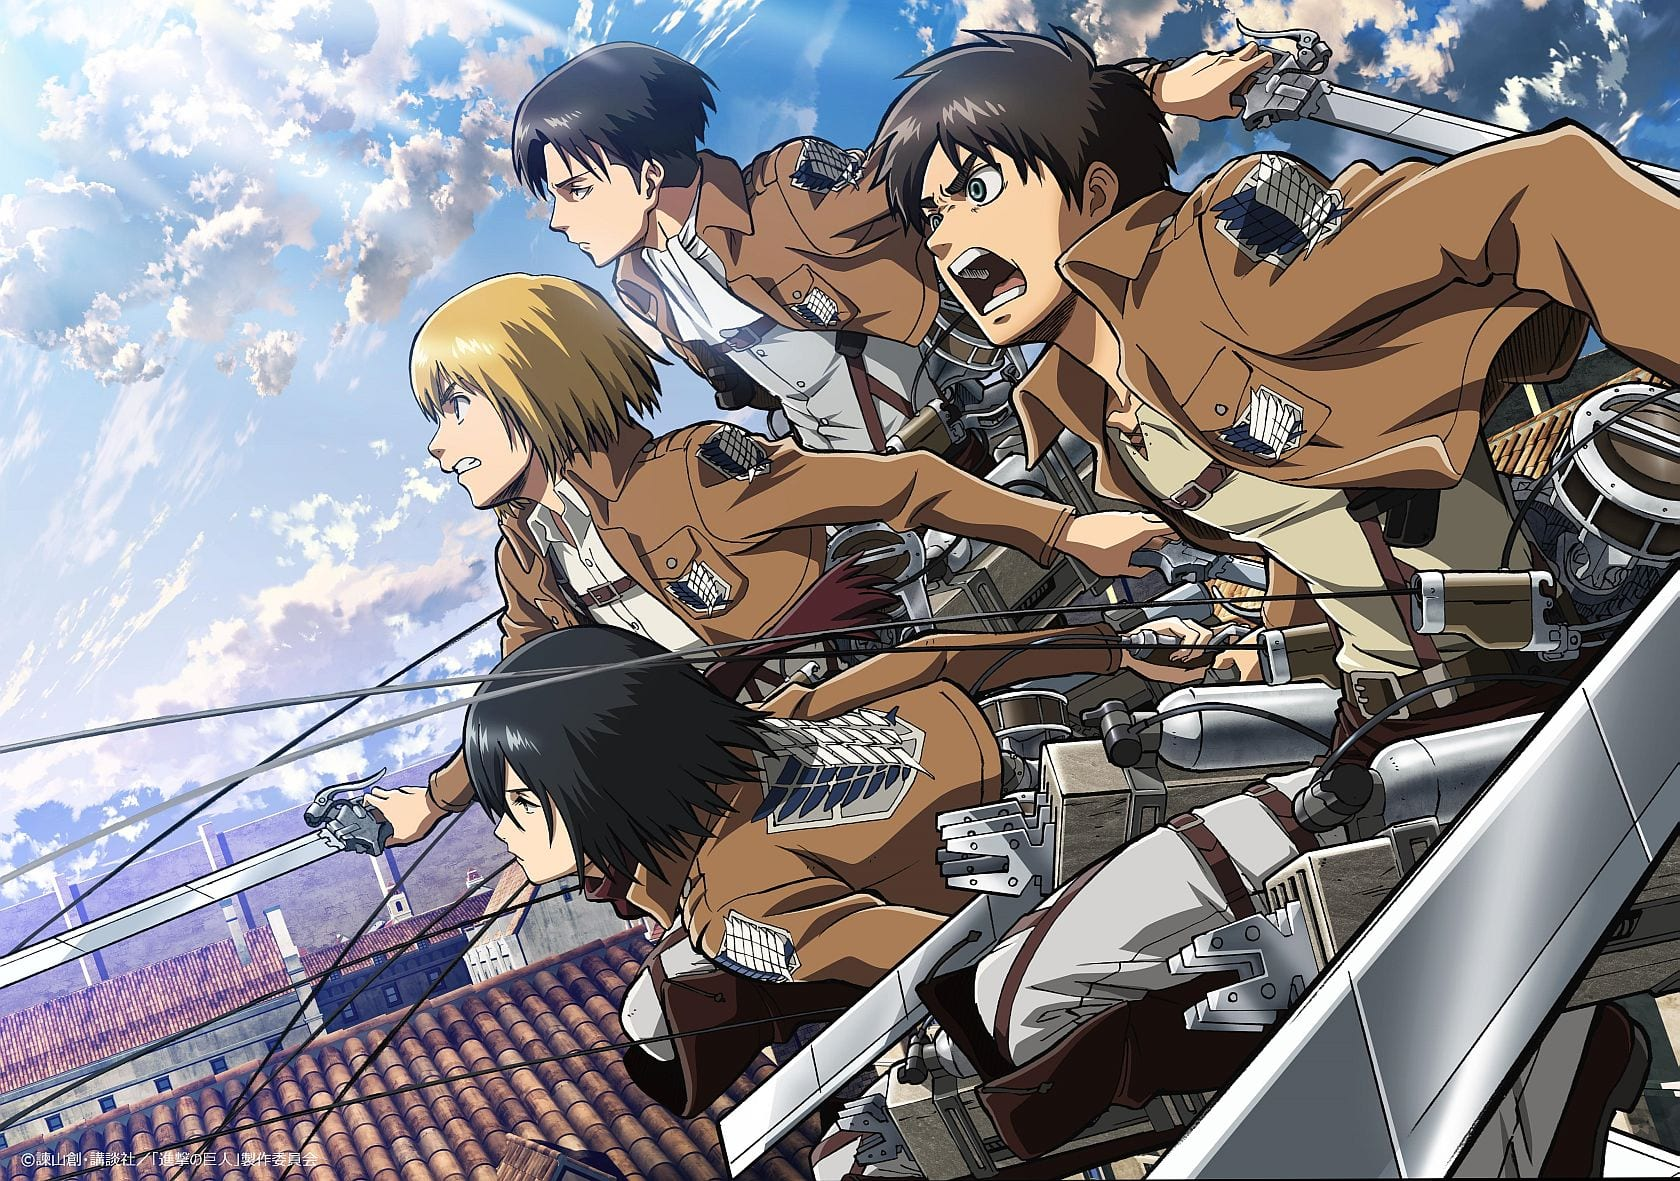 Attack On Titan Chapter 120 update